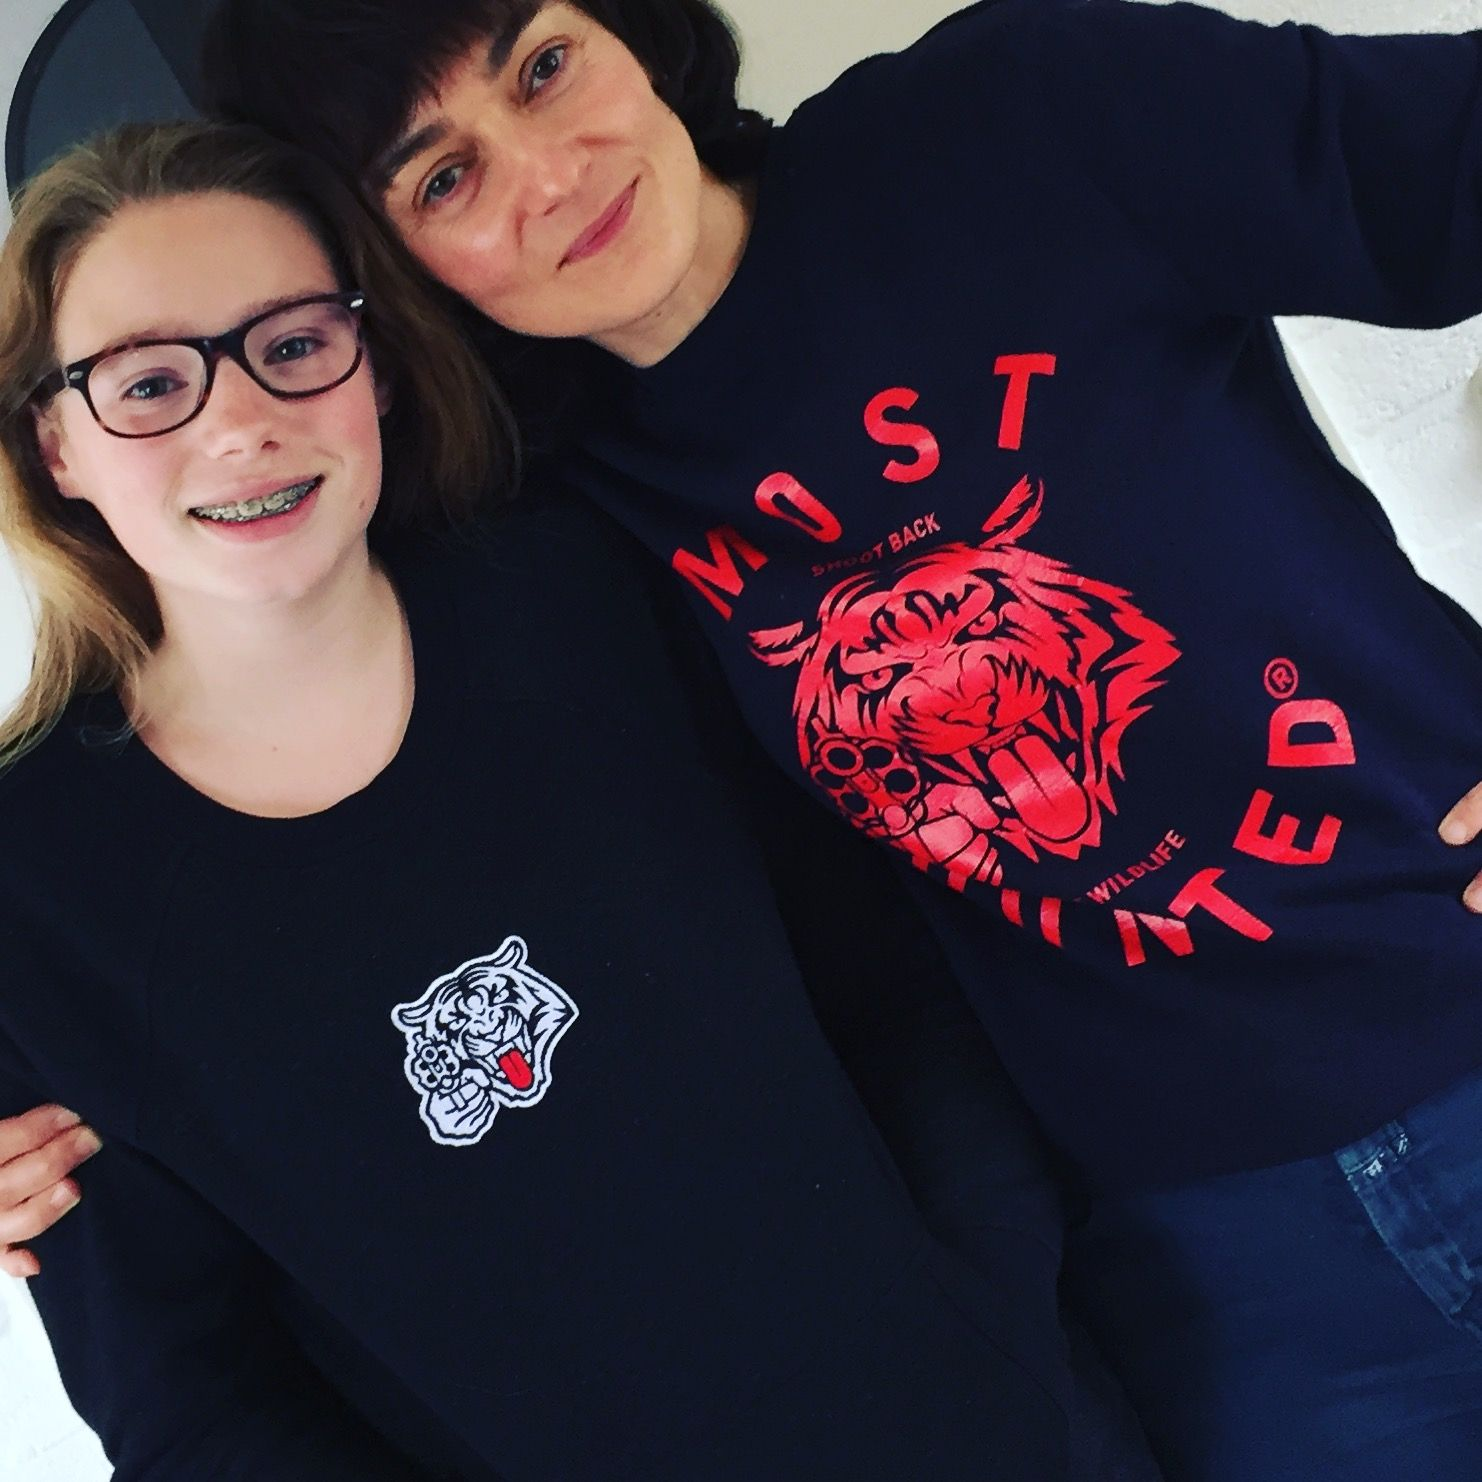 Thnx for your roarrrs tigers 😻 Beautiful shot Maja and Mijke! #girlpower #tigerpower #mosthunted #tiger #sweaters #shootback #savewildlife #beastly #good #streetwear #streetstyle #girlstyle #loveit #endextinction #dogood #dosomething #dressforsuccess mosthunted.com #wearatownrisk #roarrr